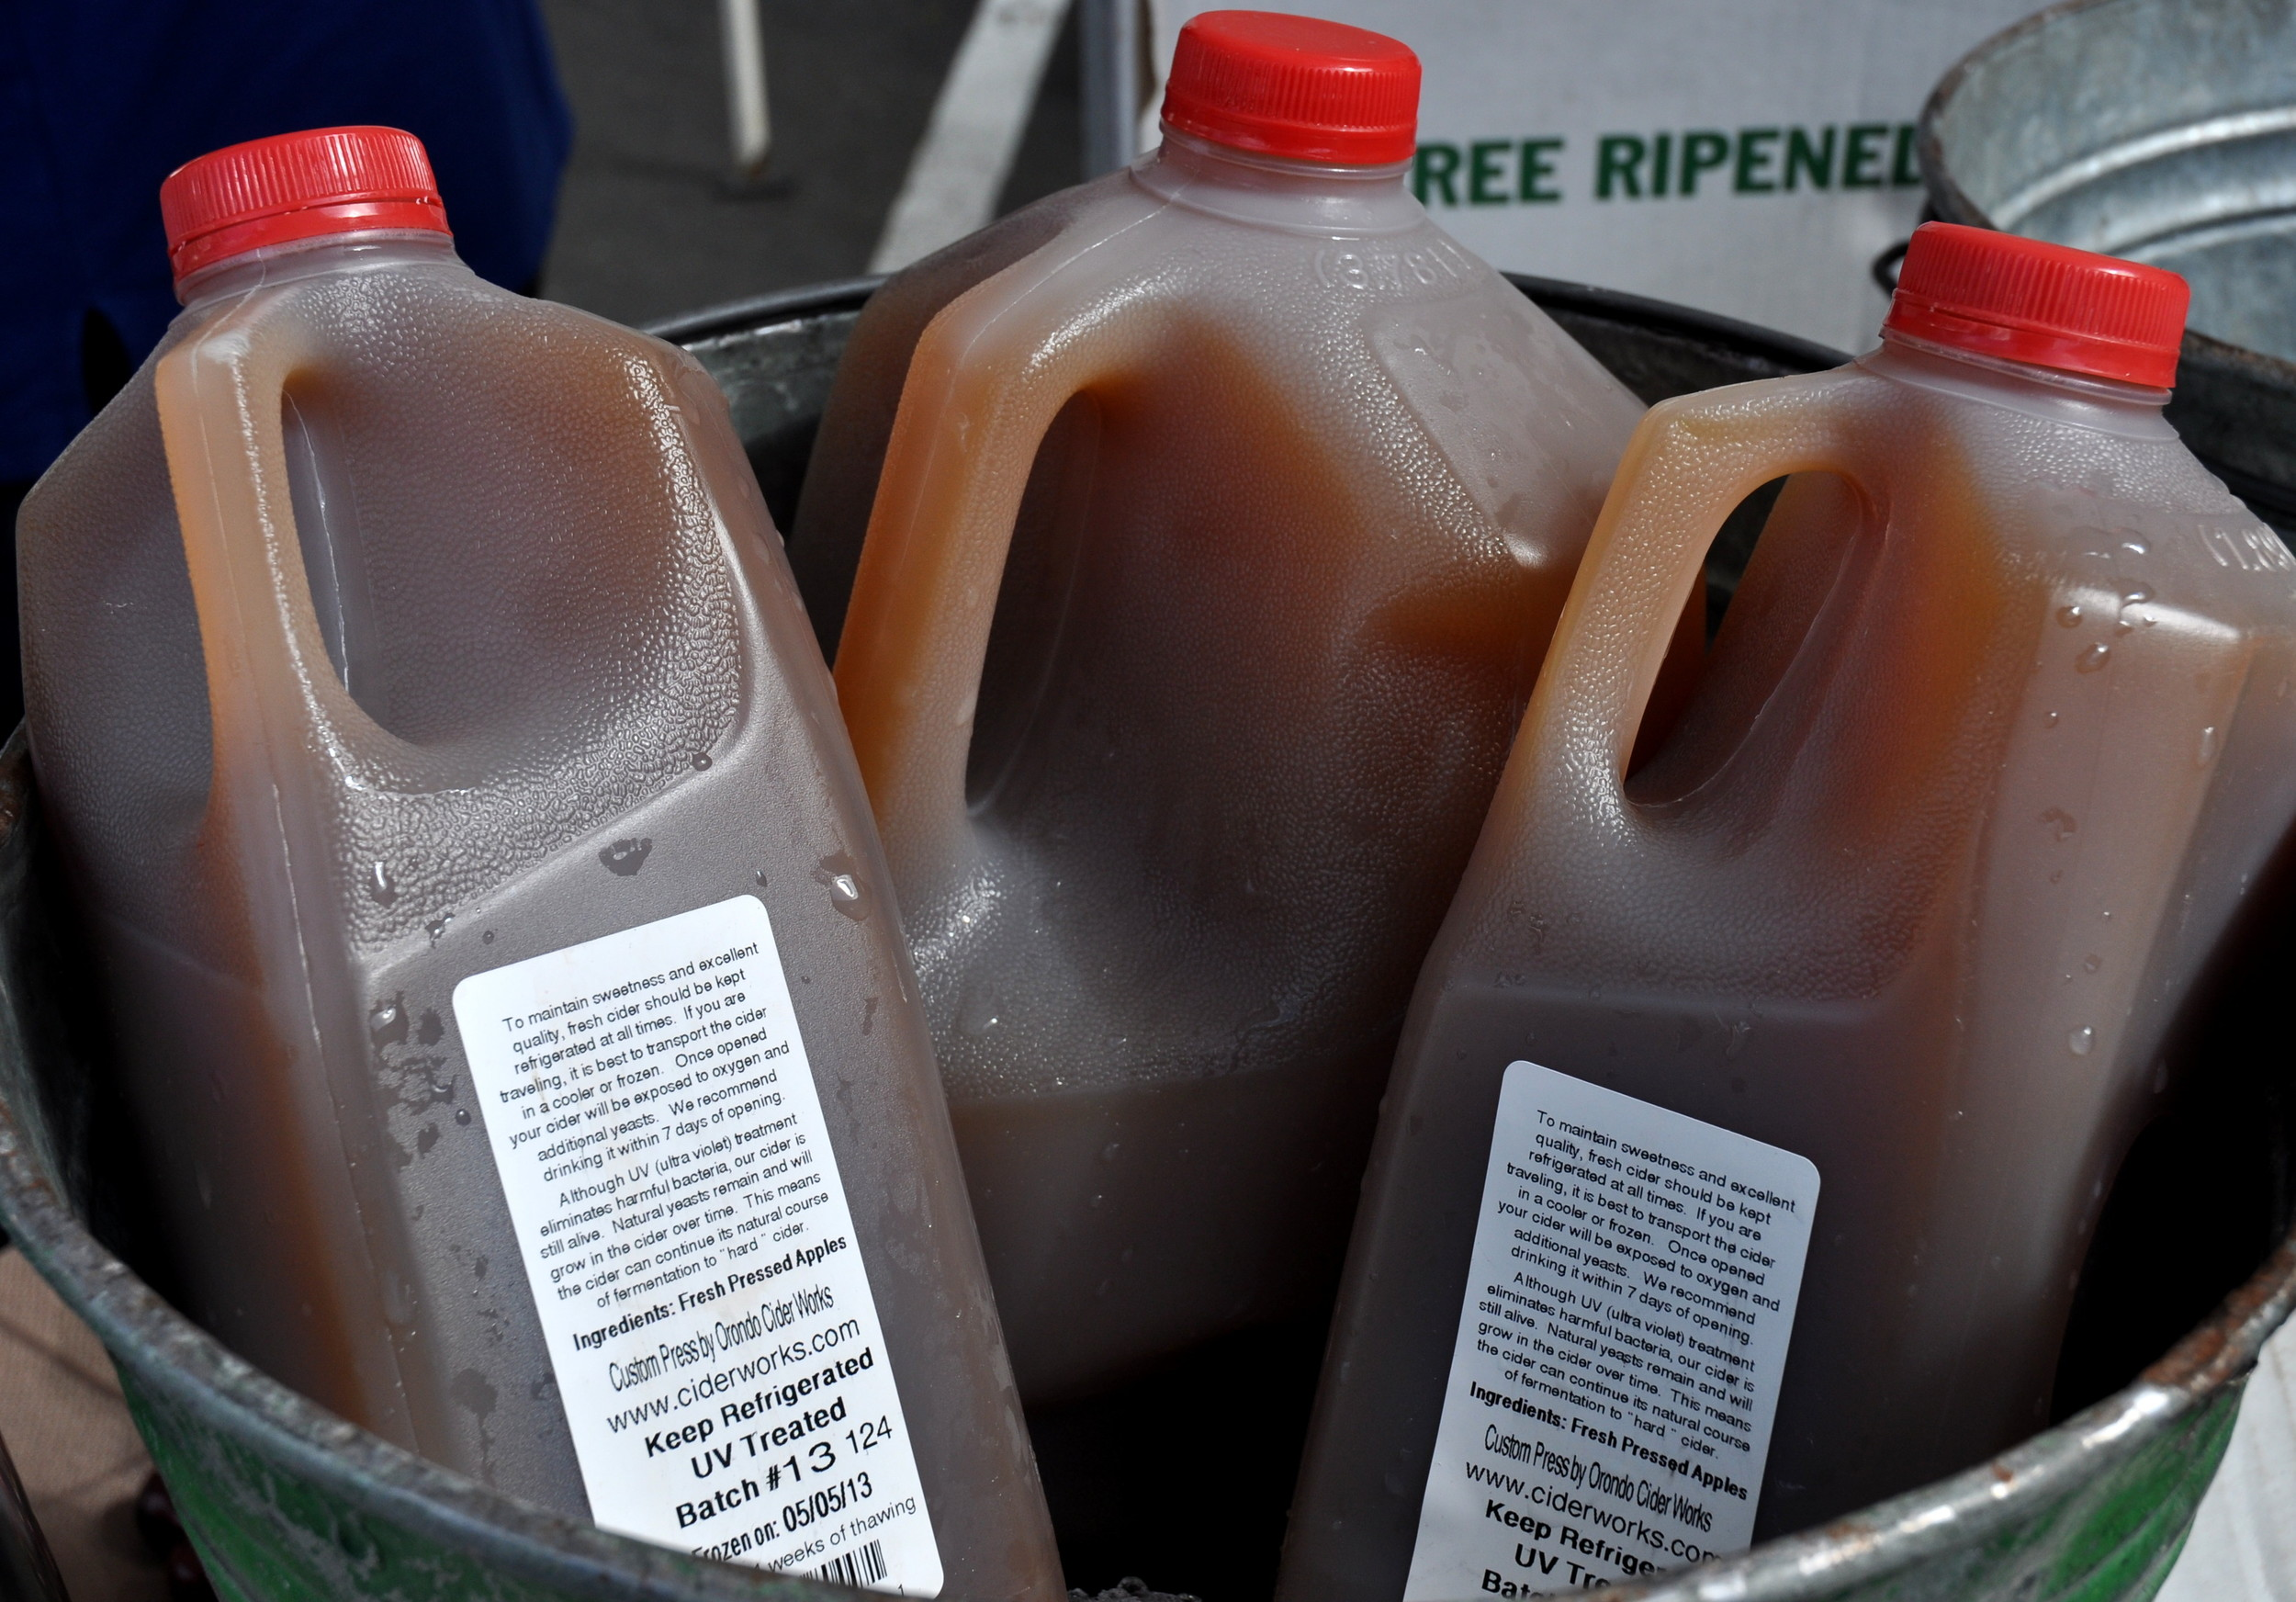 Last-of-the-season fresh apple cider from Martin Family Orchards. Photo copyright 2013 by Zachary D. Lyons.